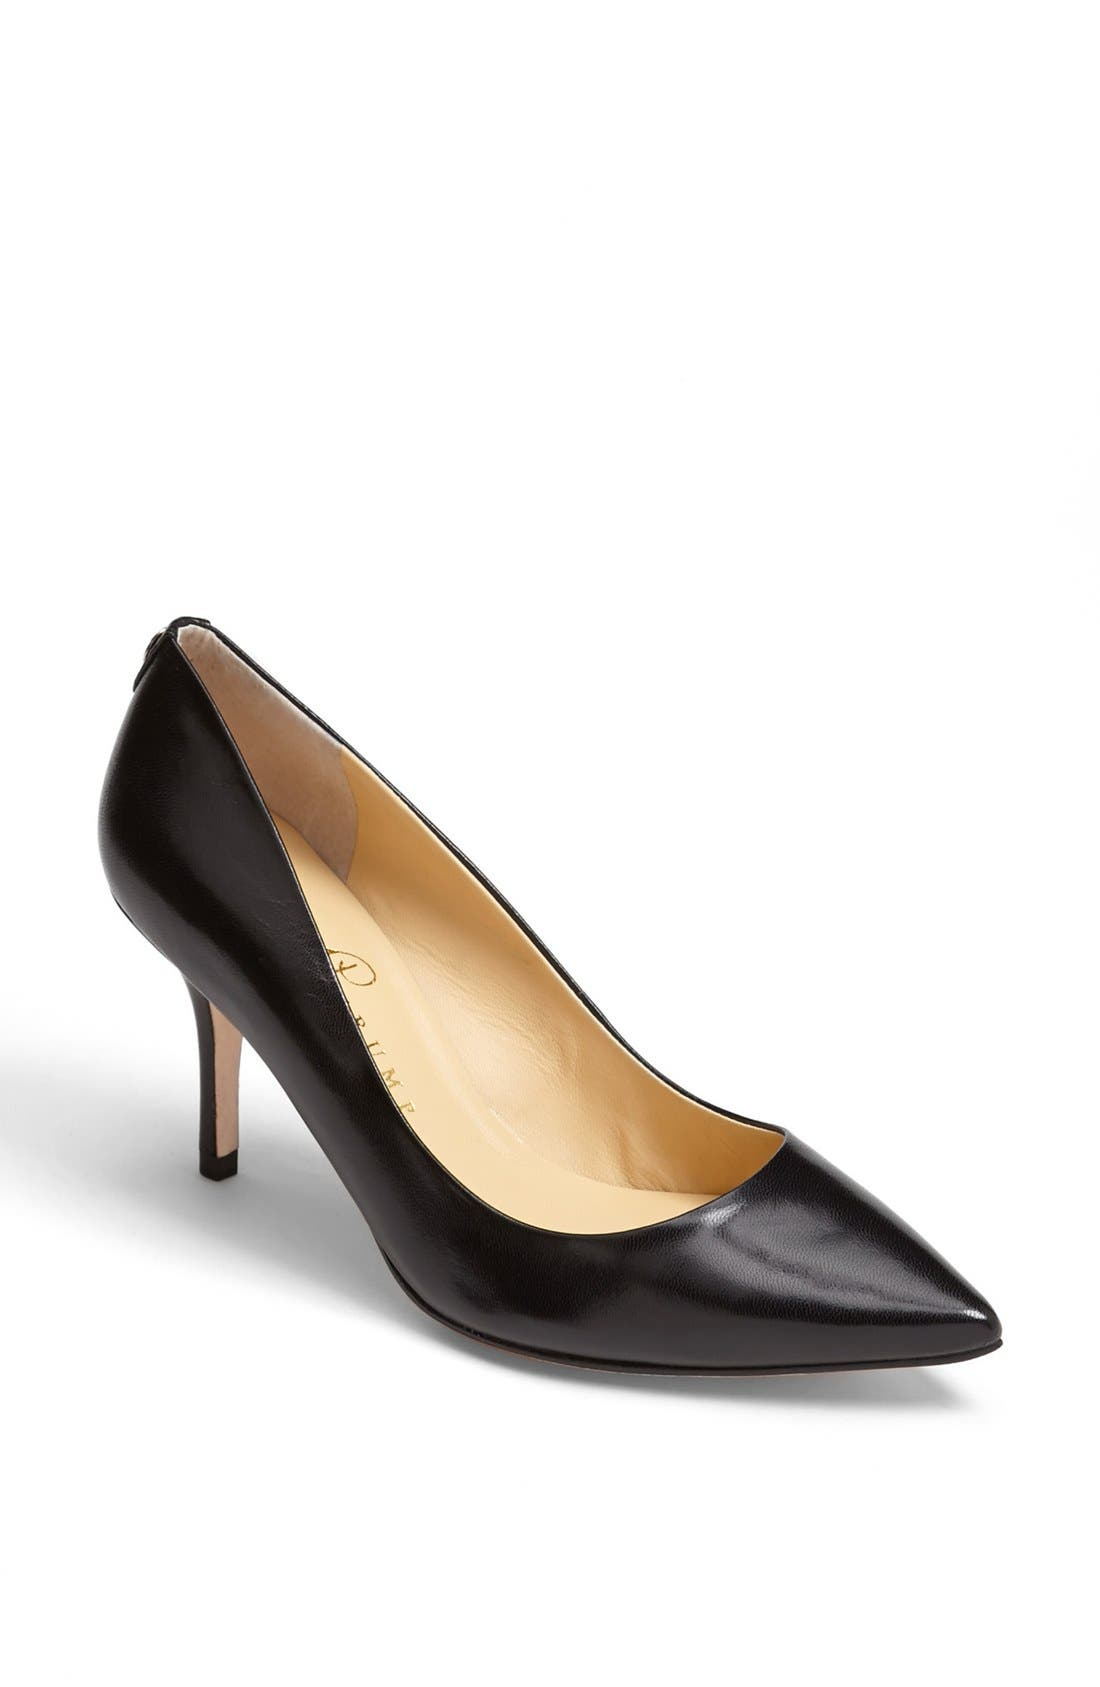 'Natalie' Pointed Toe Pump,                             Main thumbnail 1, color,                             Black Leather